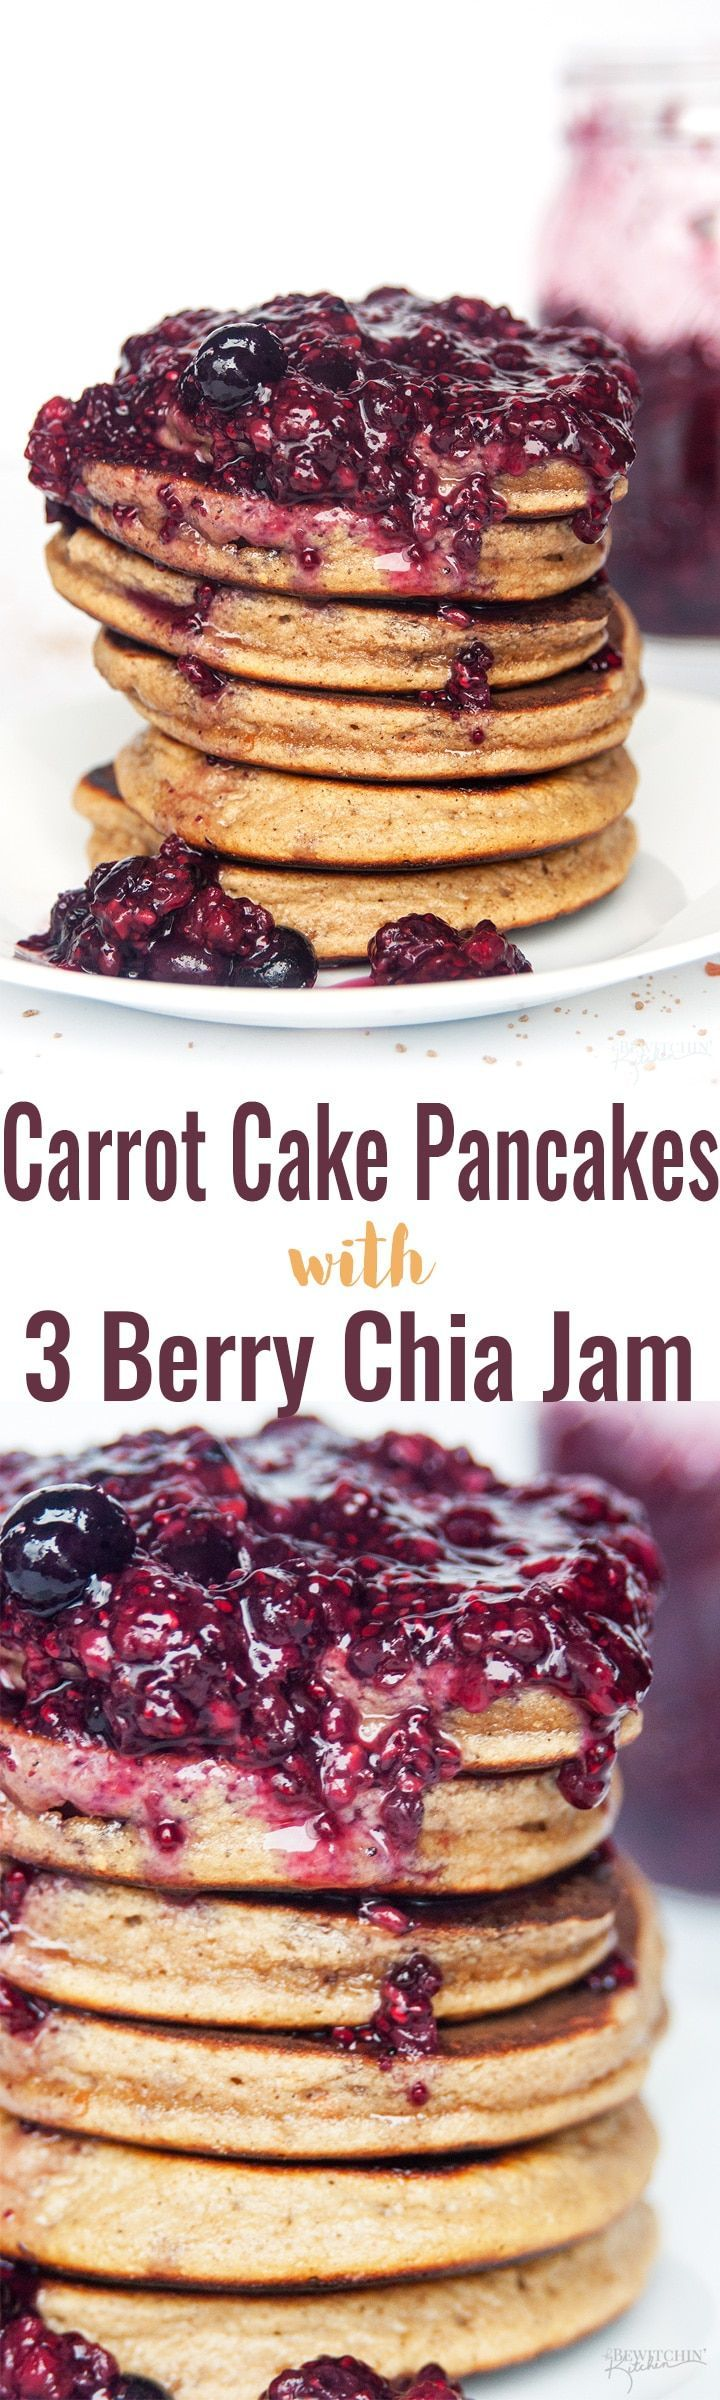 Carrot Cake Pancakes with 3 Berry Chia Jam - this gluten free and grain free pancake recipe is the ultimate breakfast (or brunch). Made with Epicure products, this is a new favorite recipe! #breakfastrecipes #glutenfreepancakes #coconutflourpancakes #chiajam #carrotcake #thebewitchinkitchen